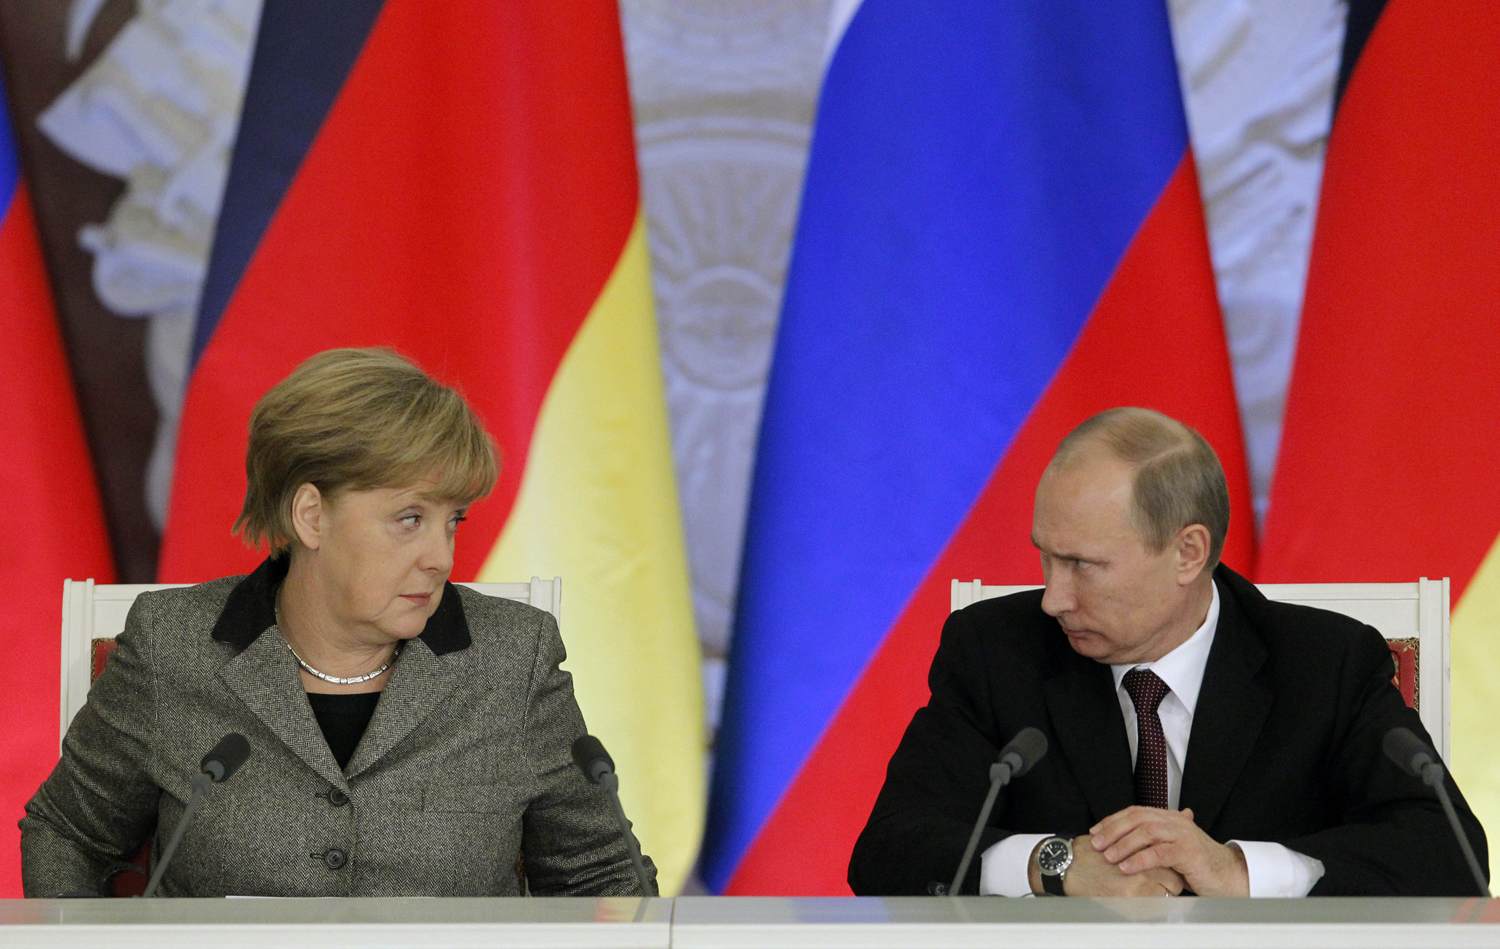 From left: German Chancellor Angela Merkel and Russian President Vladimir Putin answer journalists' questions during a joint news conference in Moscow's Kremlin Nov. 16, 2012.